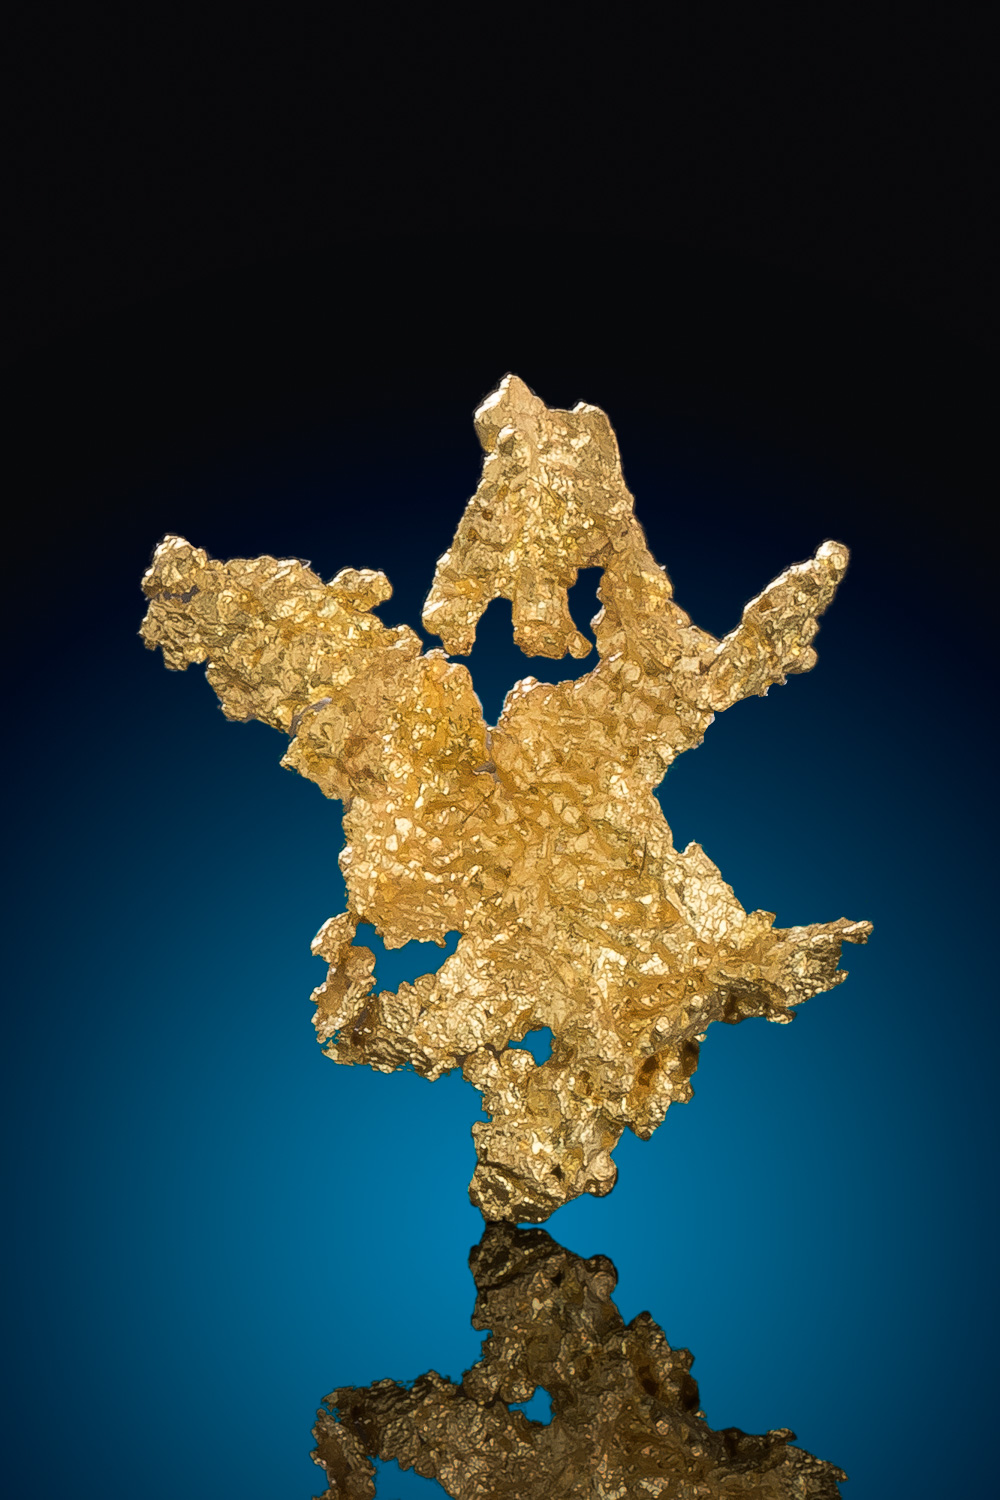 Branching Crystalline Gold Nugget - Eagles Nest Gold Mine